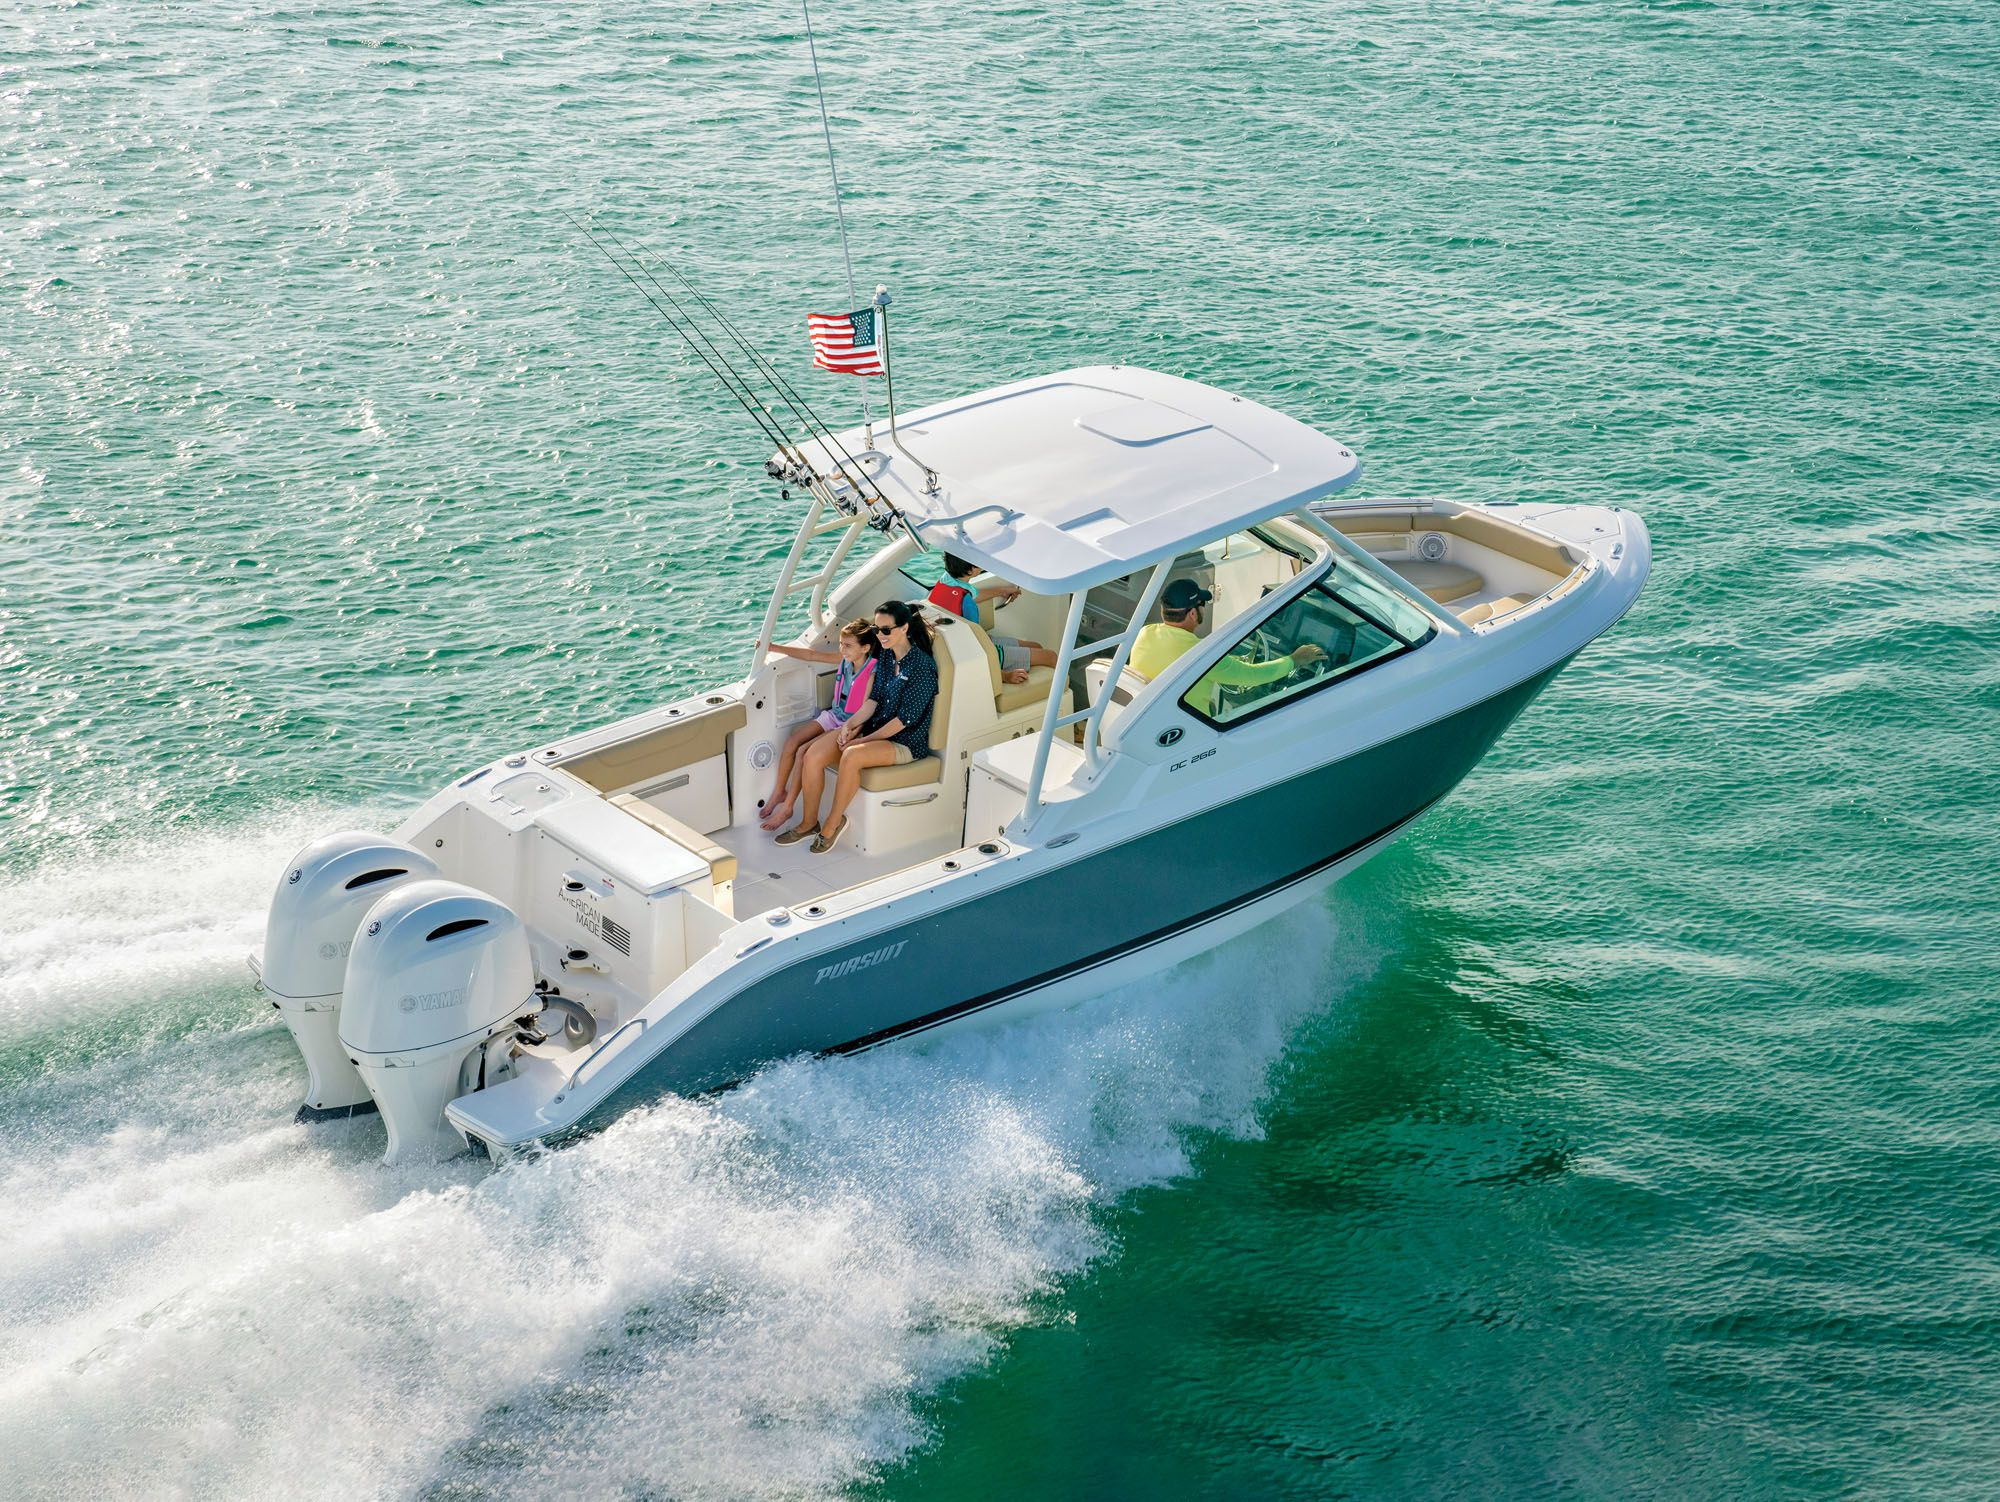 The DC 266 is capable of casual fishing, cruising and family time.